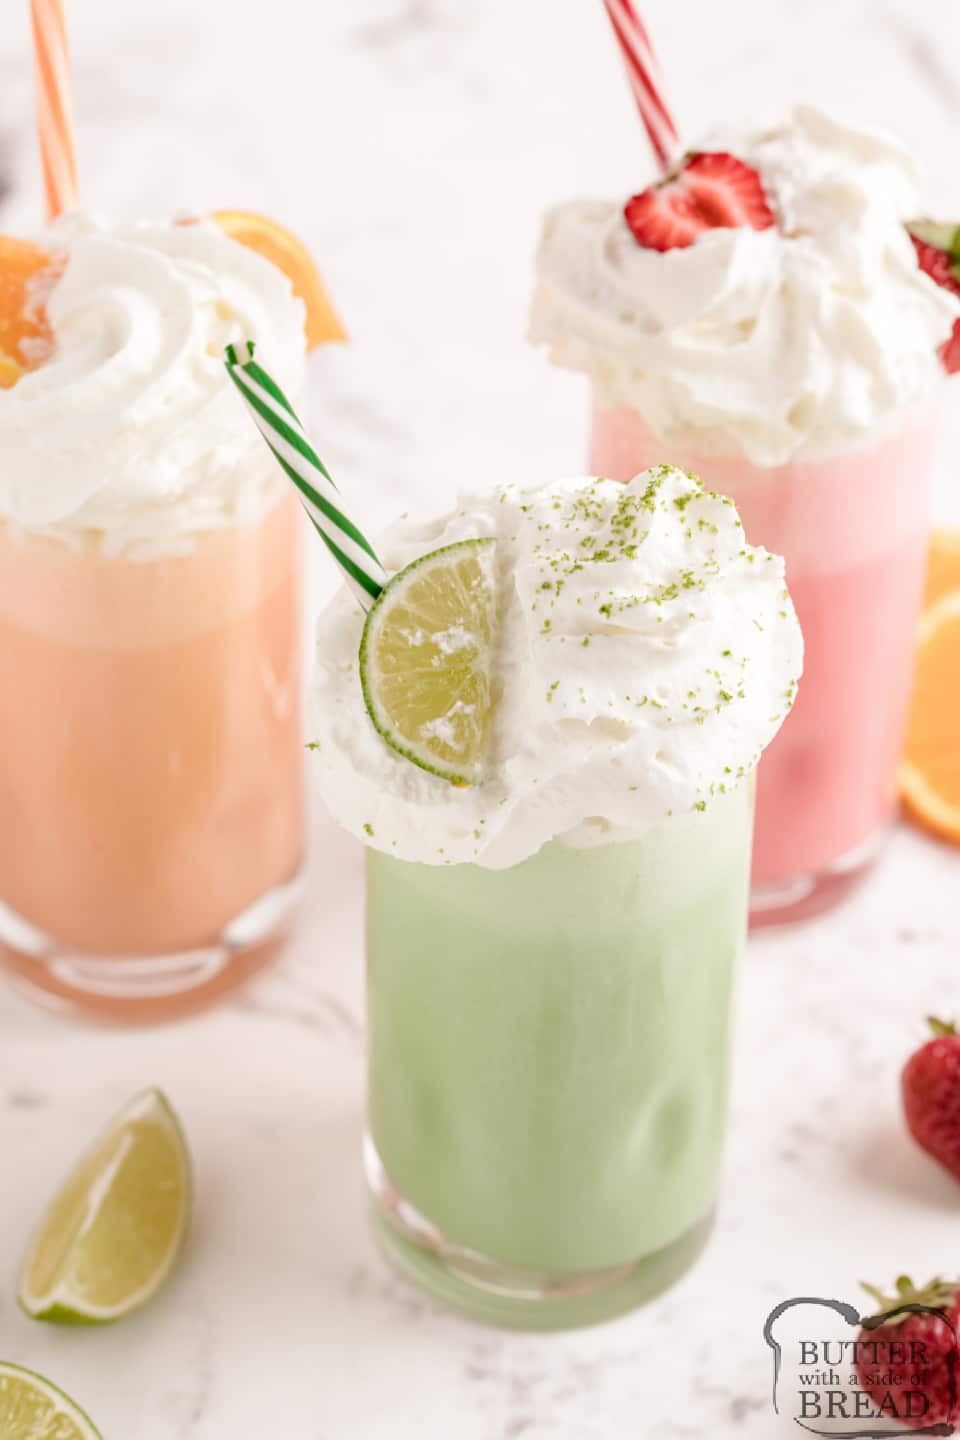 Easy Jello Milkshakes made with ice cream, milk and any flavor of Jello. Colorful and delicious homemade milkshake recipe that the whole family will enjoy!